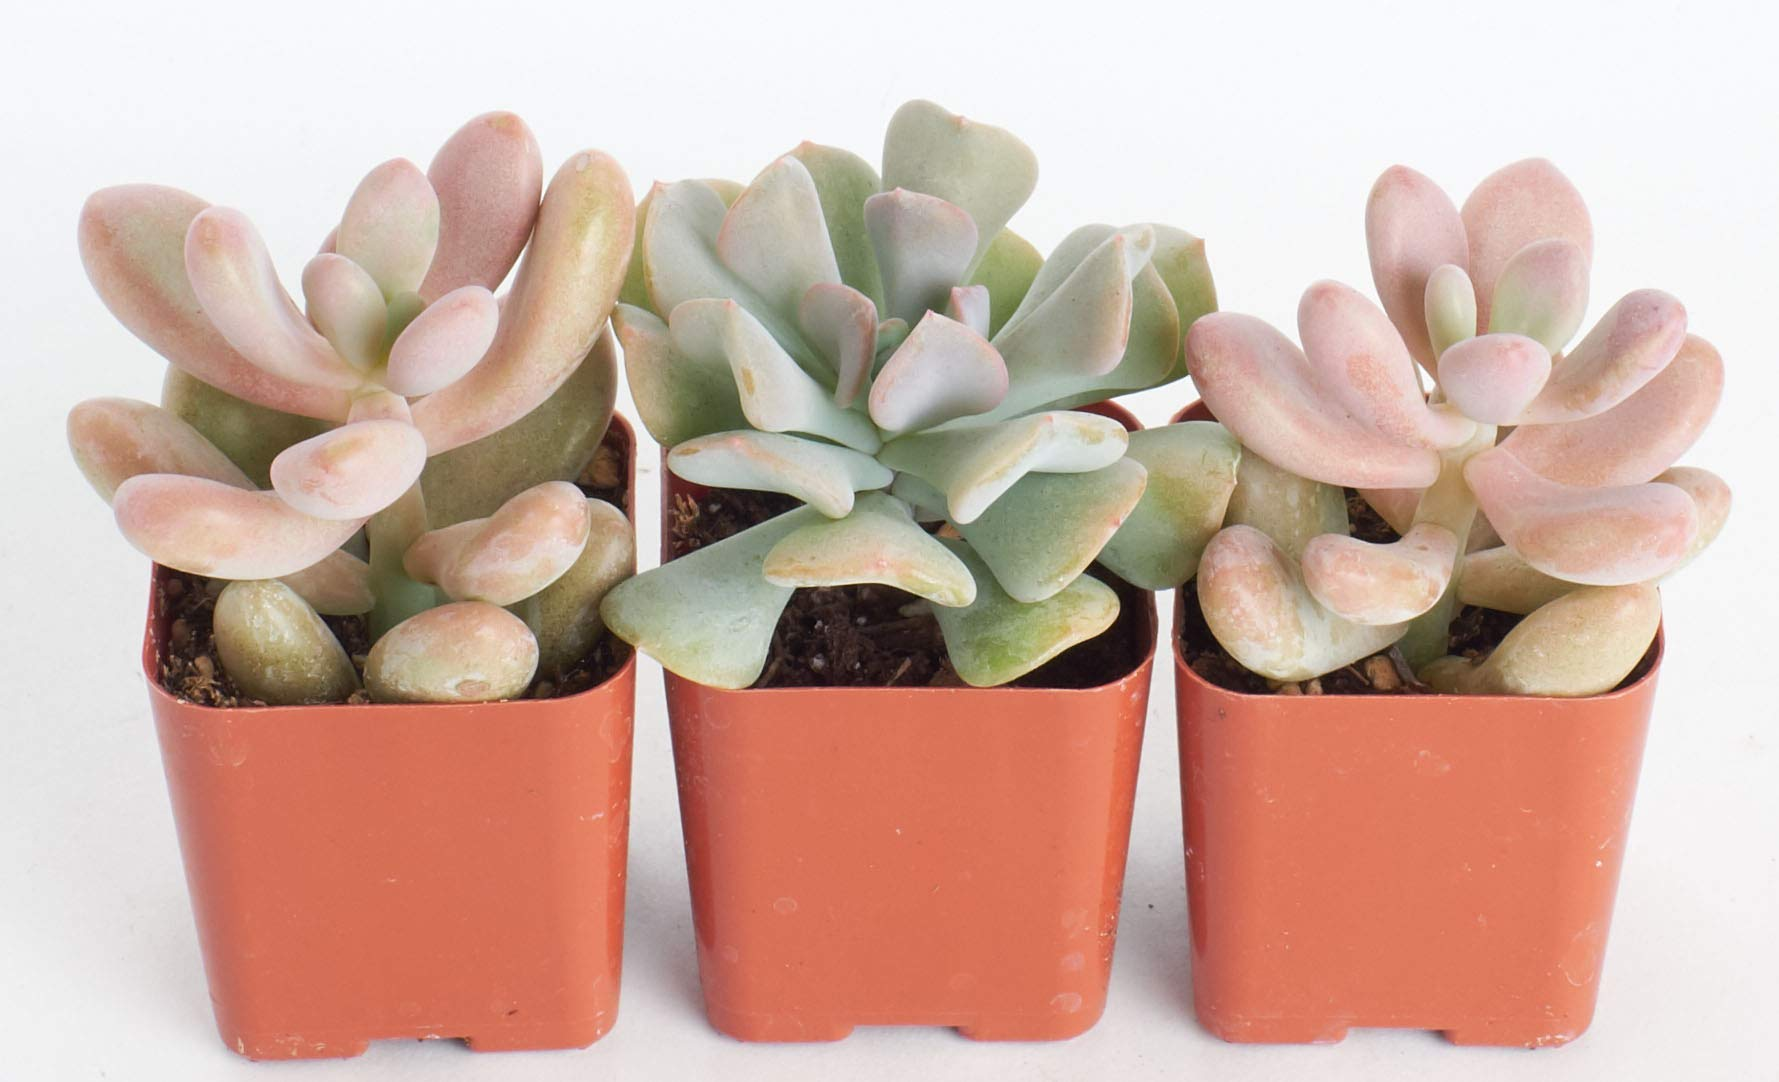 Shop Succulents | It's A Girl! Pink Collection of Live Succulent Plants, Hand Selected Variety Pack of Mini Succulents in Pastel Pink Colors | Collection of 3